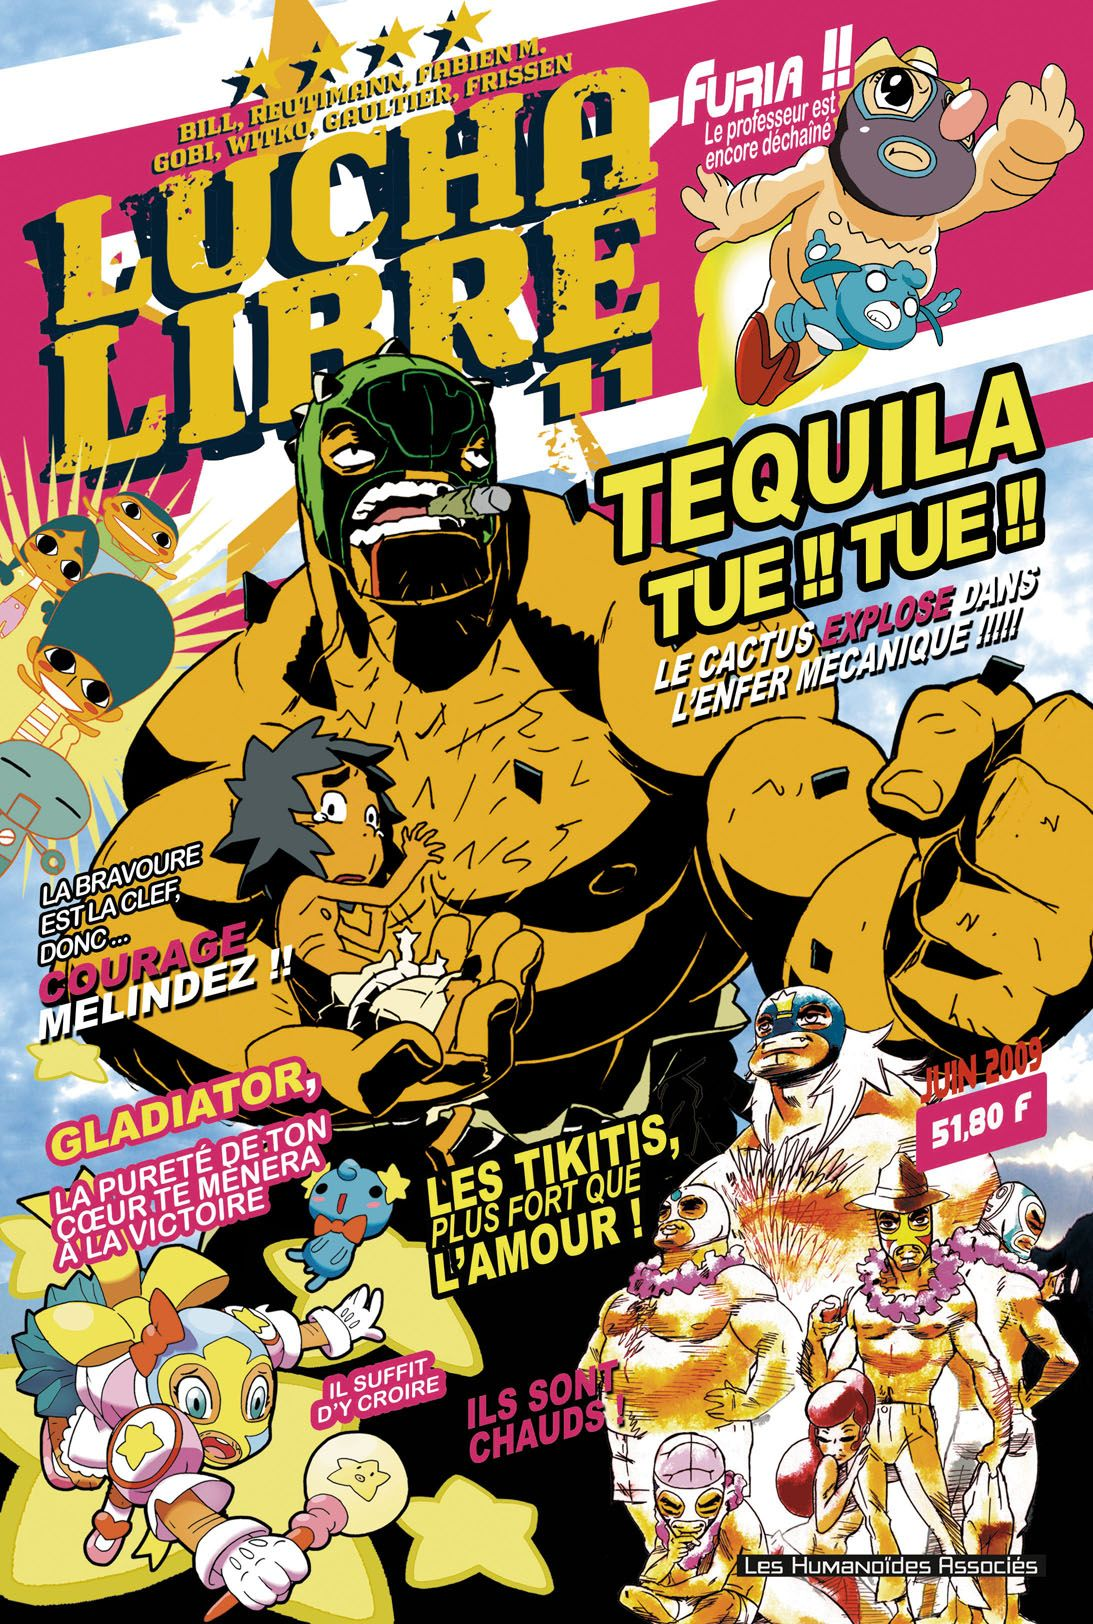 Pin by 誌忠 洪 on Lucha libre in 2019 | Lucha libre ...